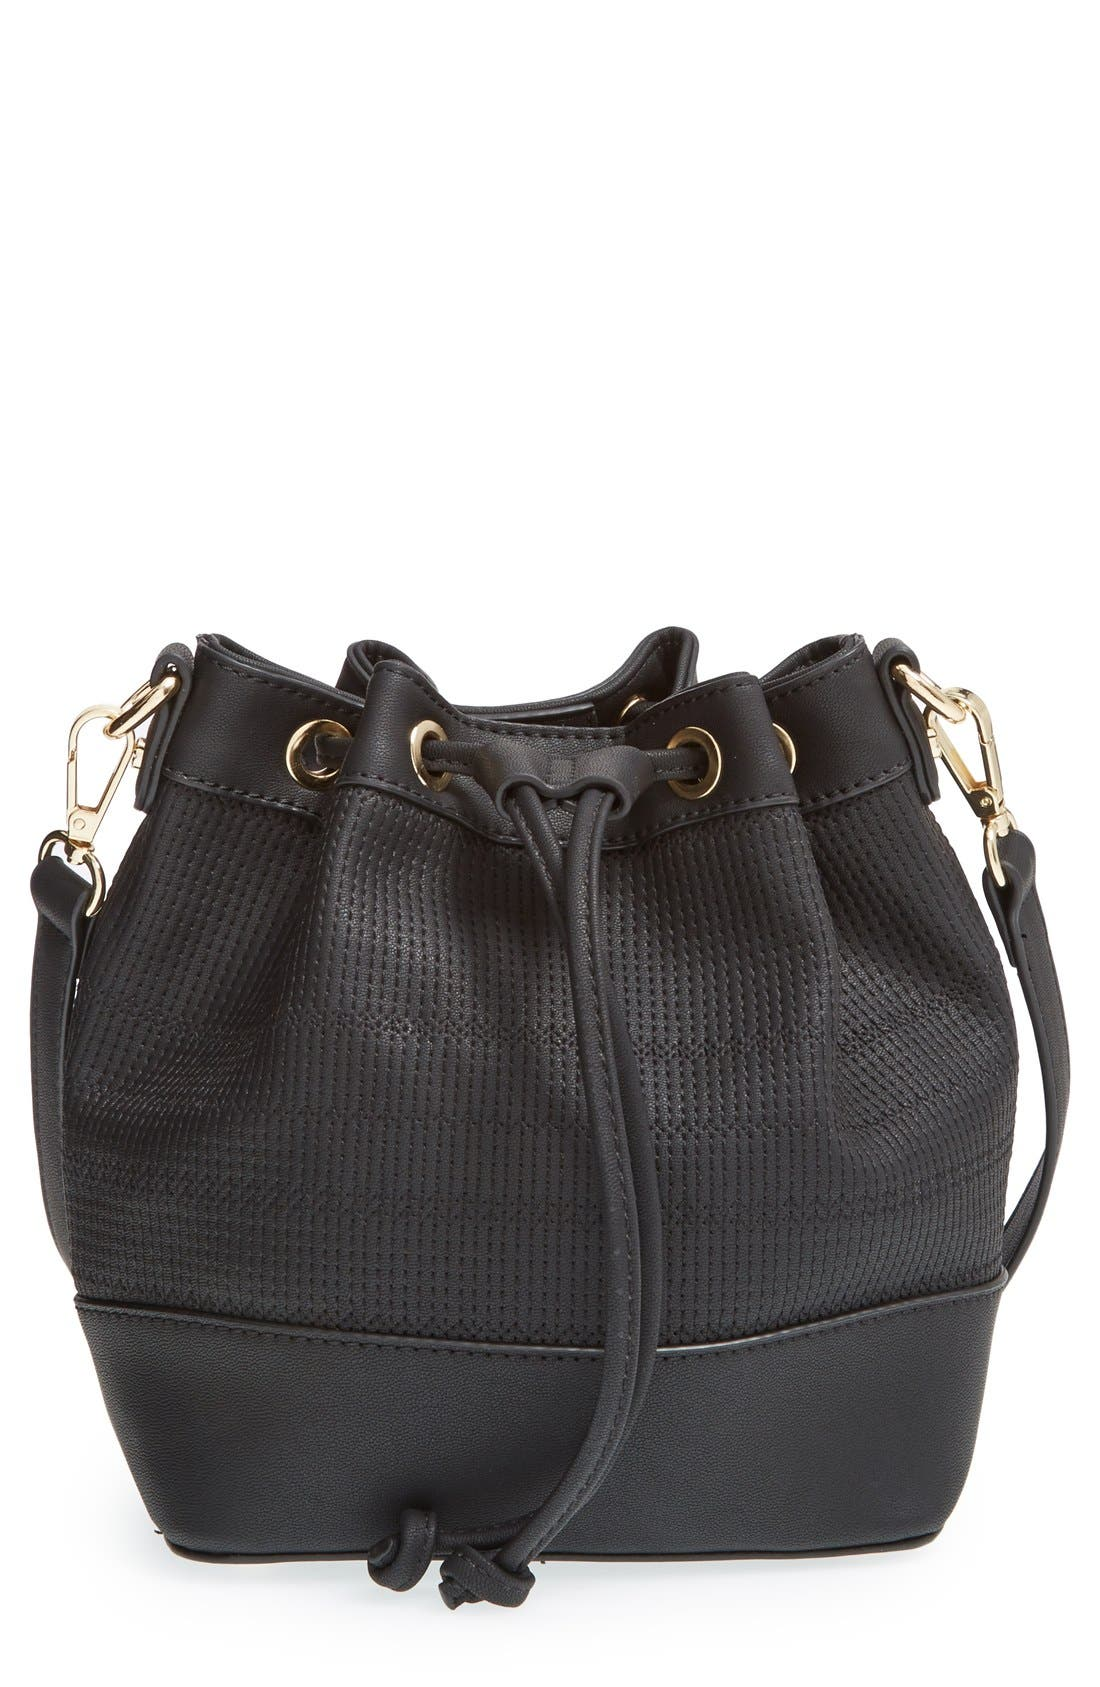 Alternate Image 1 Selected - BP. Faux Leather Bucket Bag